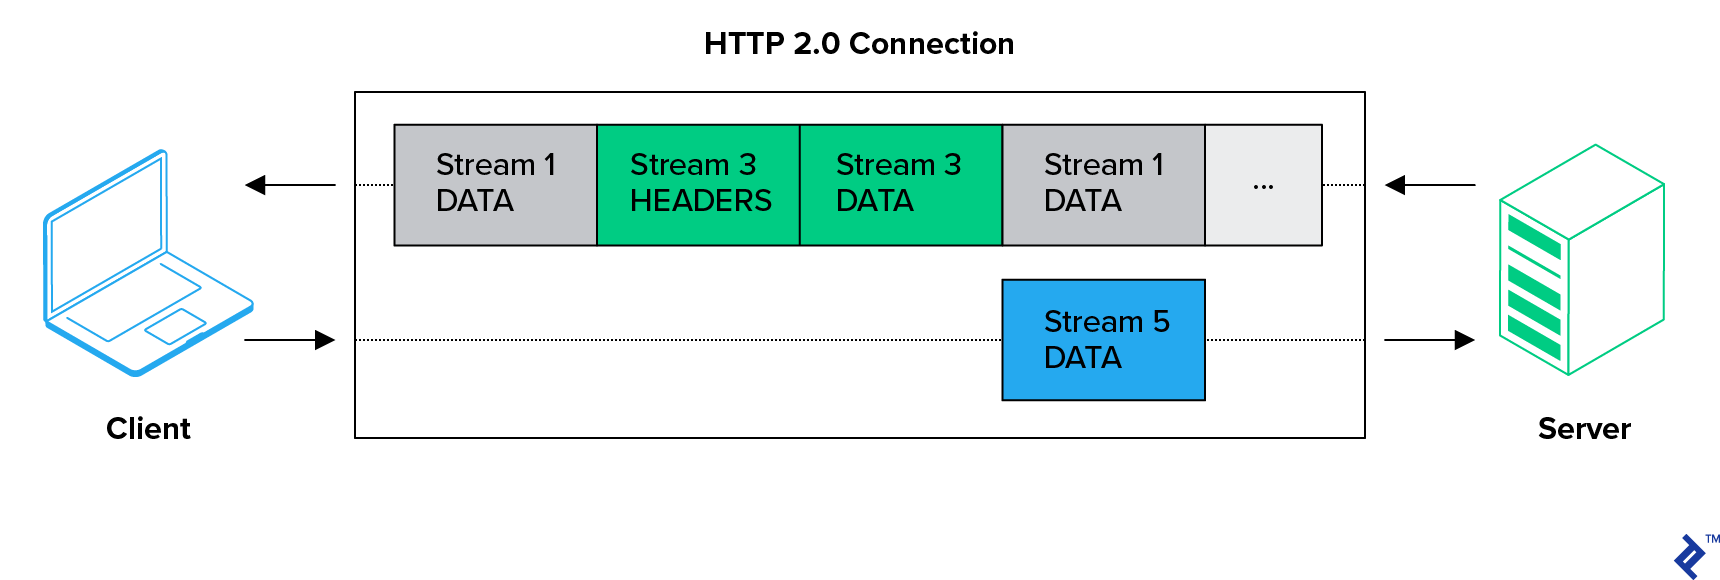 A client-server connection over HTTP 2.0.  The client is sending data over stream 5 simultaneously as the server sends, in this order, stream 1 data, stream 3 headers, stream 3 data, stream 1 data, and more.